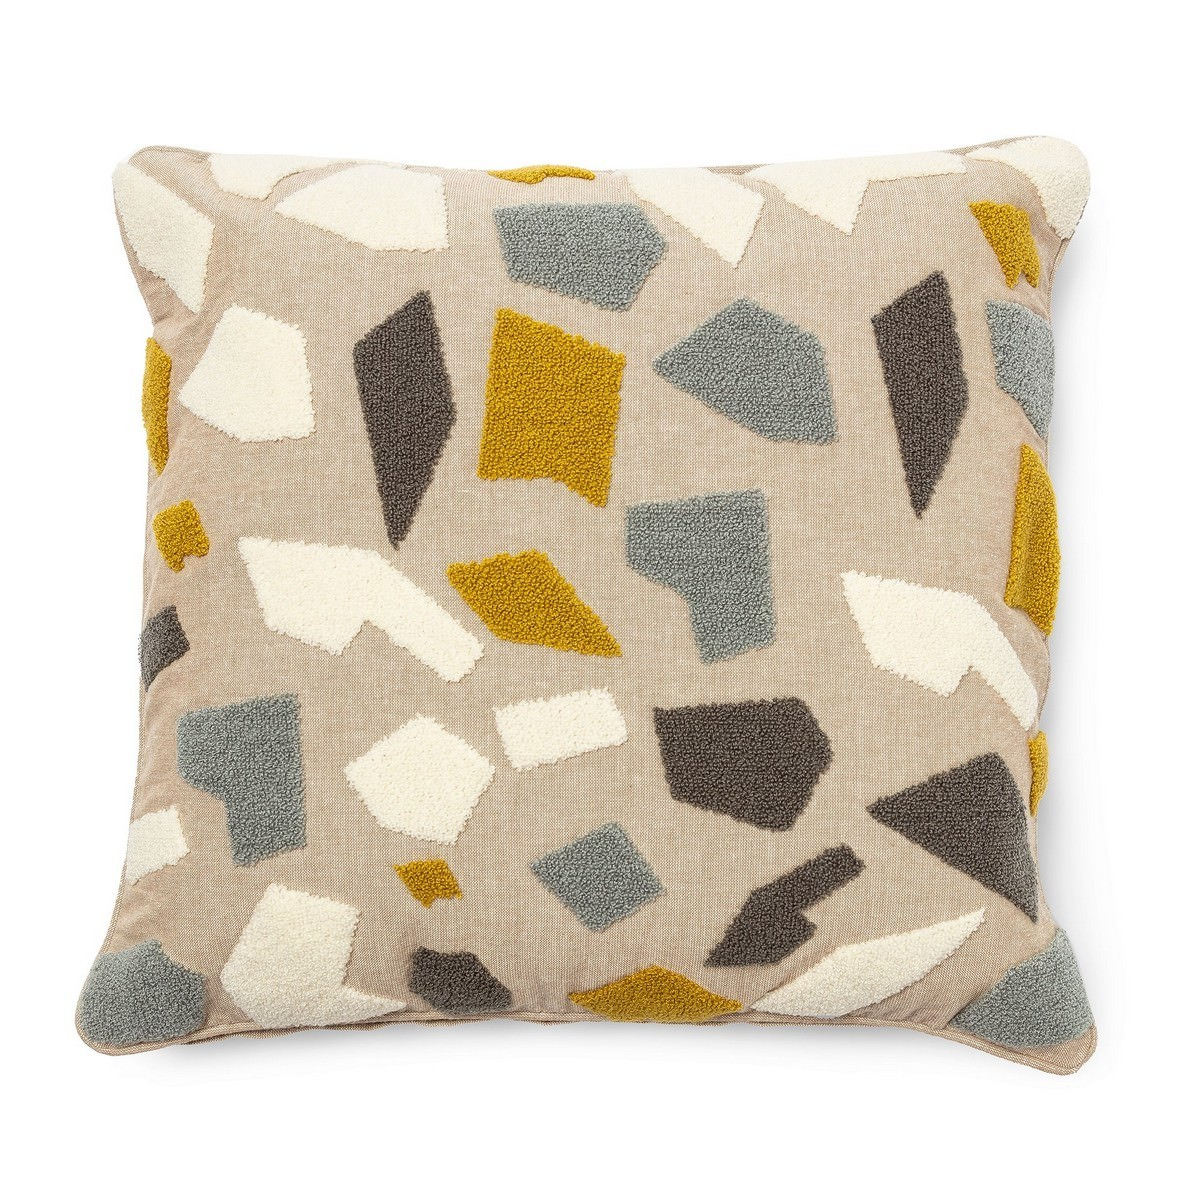 Keatons Fabric Scatter Cushion, Beige